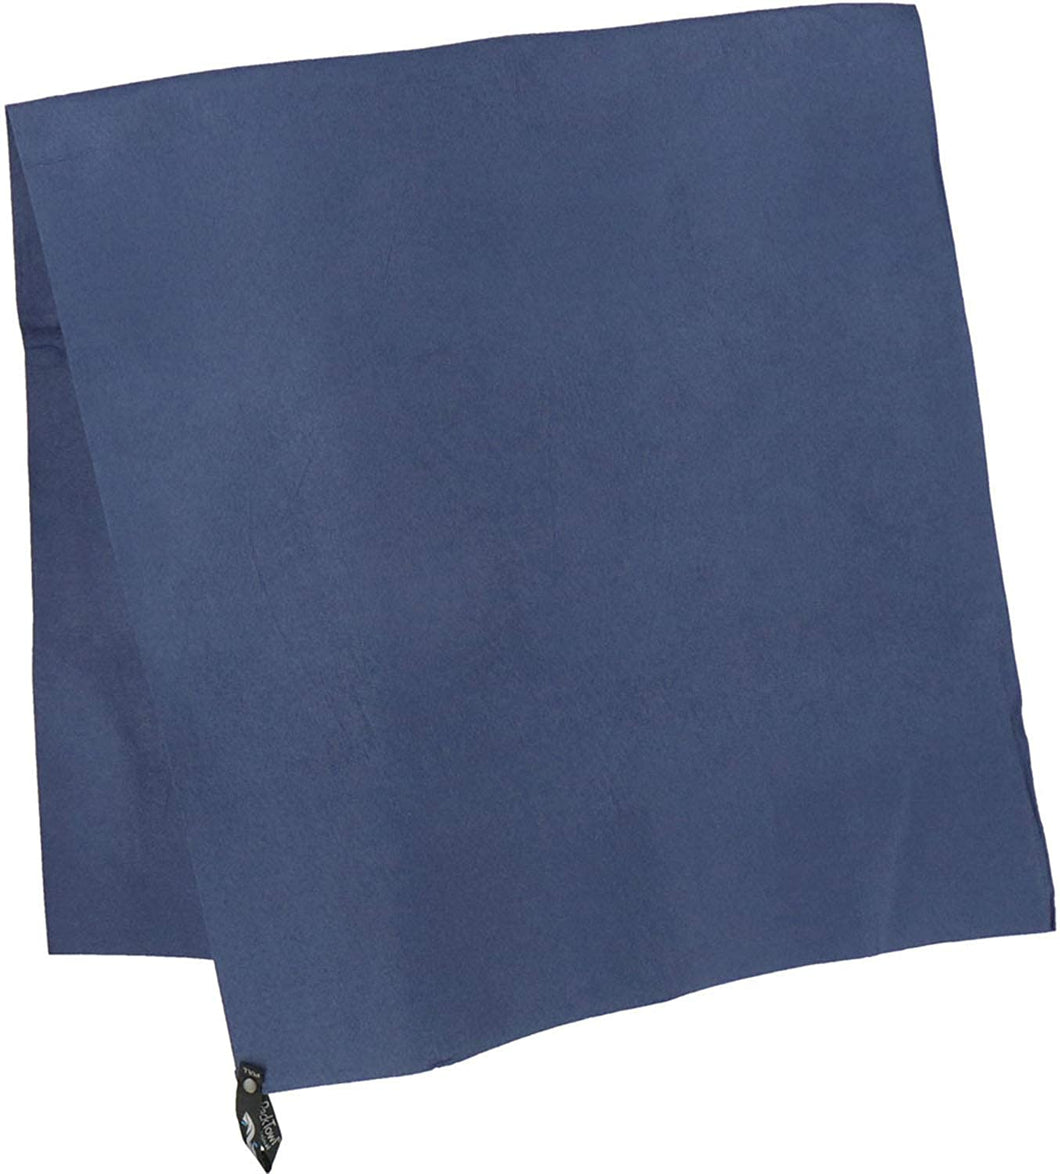 PackTowl Original Travel Towel - Large (Blue)